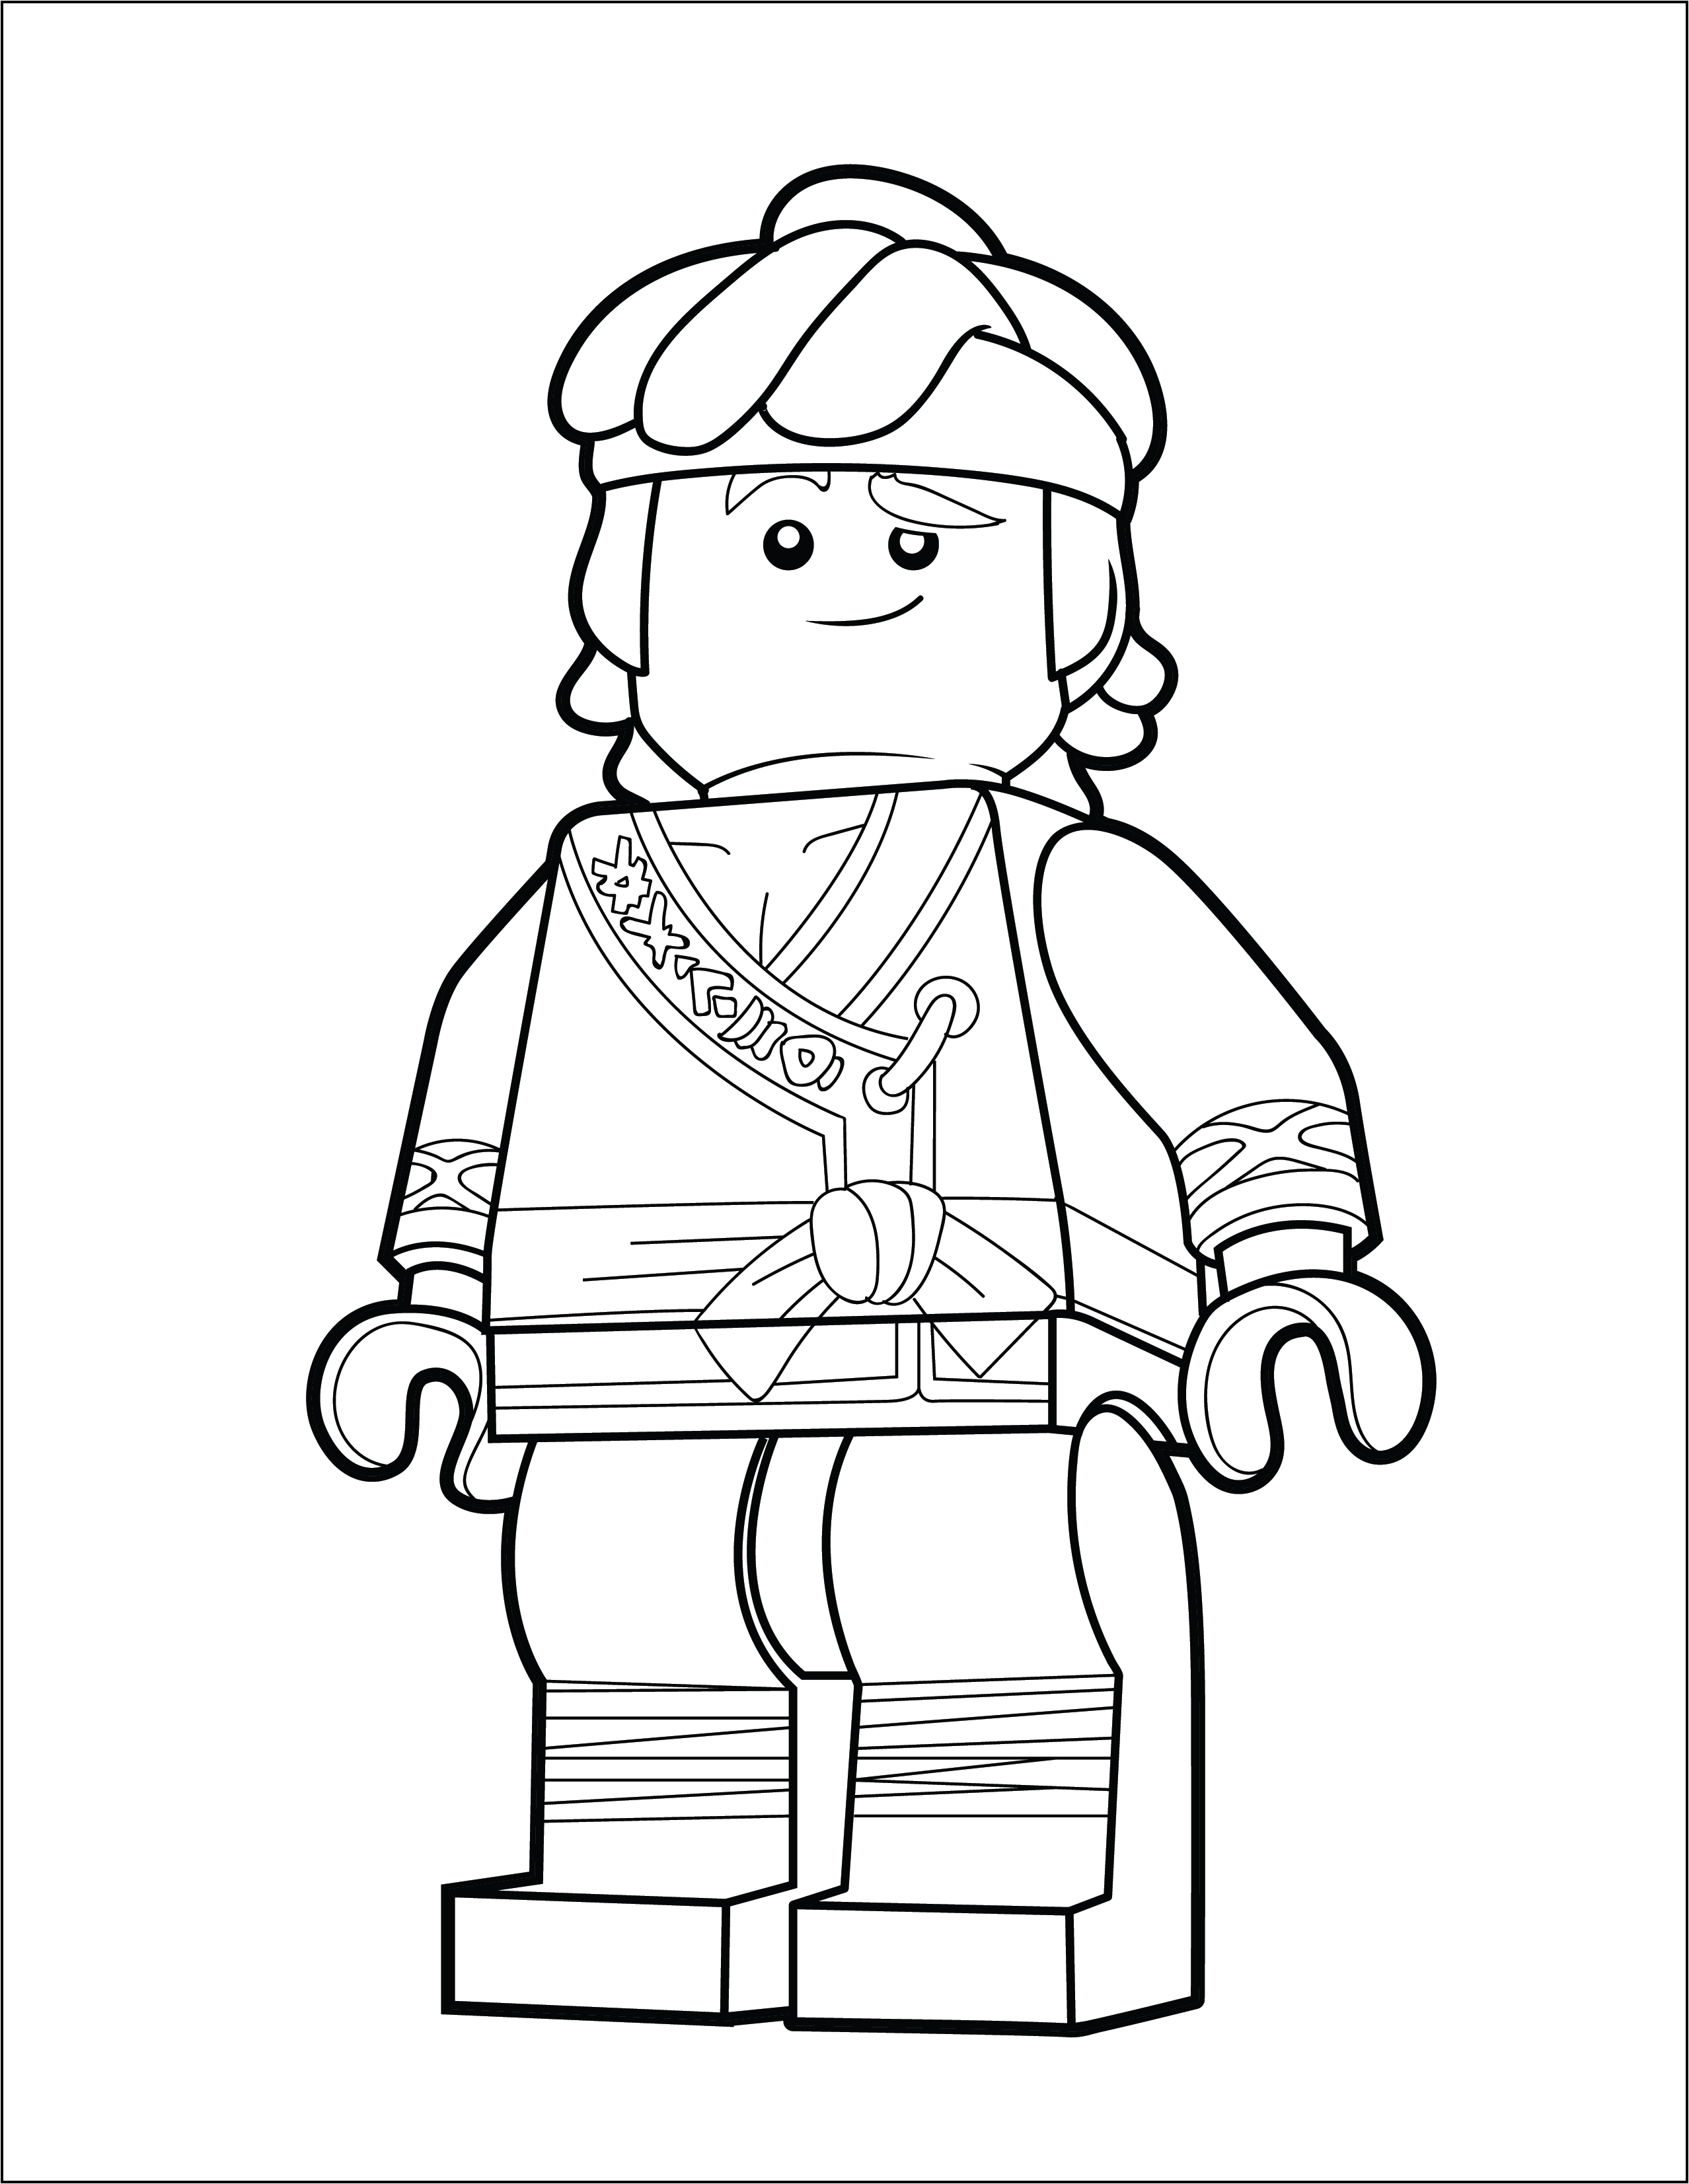 LEGO Ninjago Coloring Page - Cole - The Brick Show